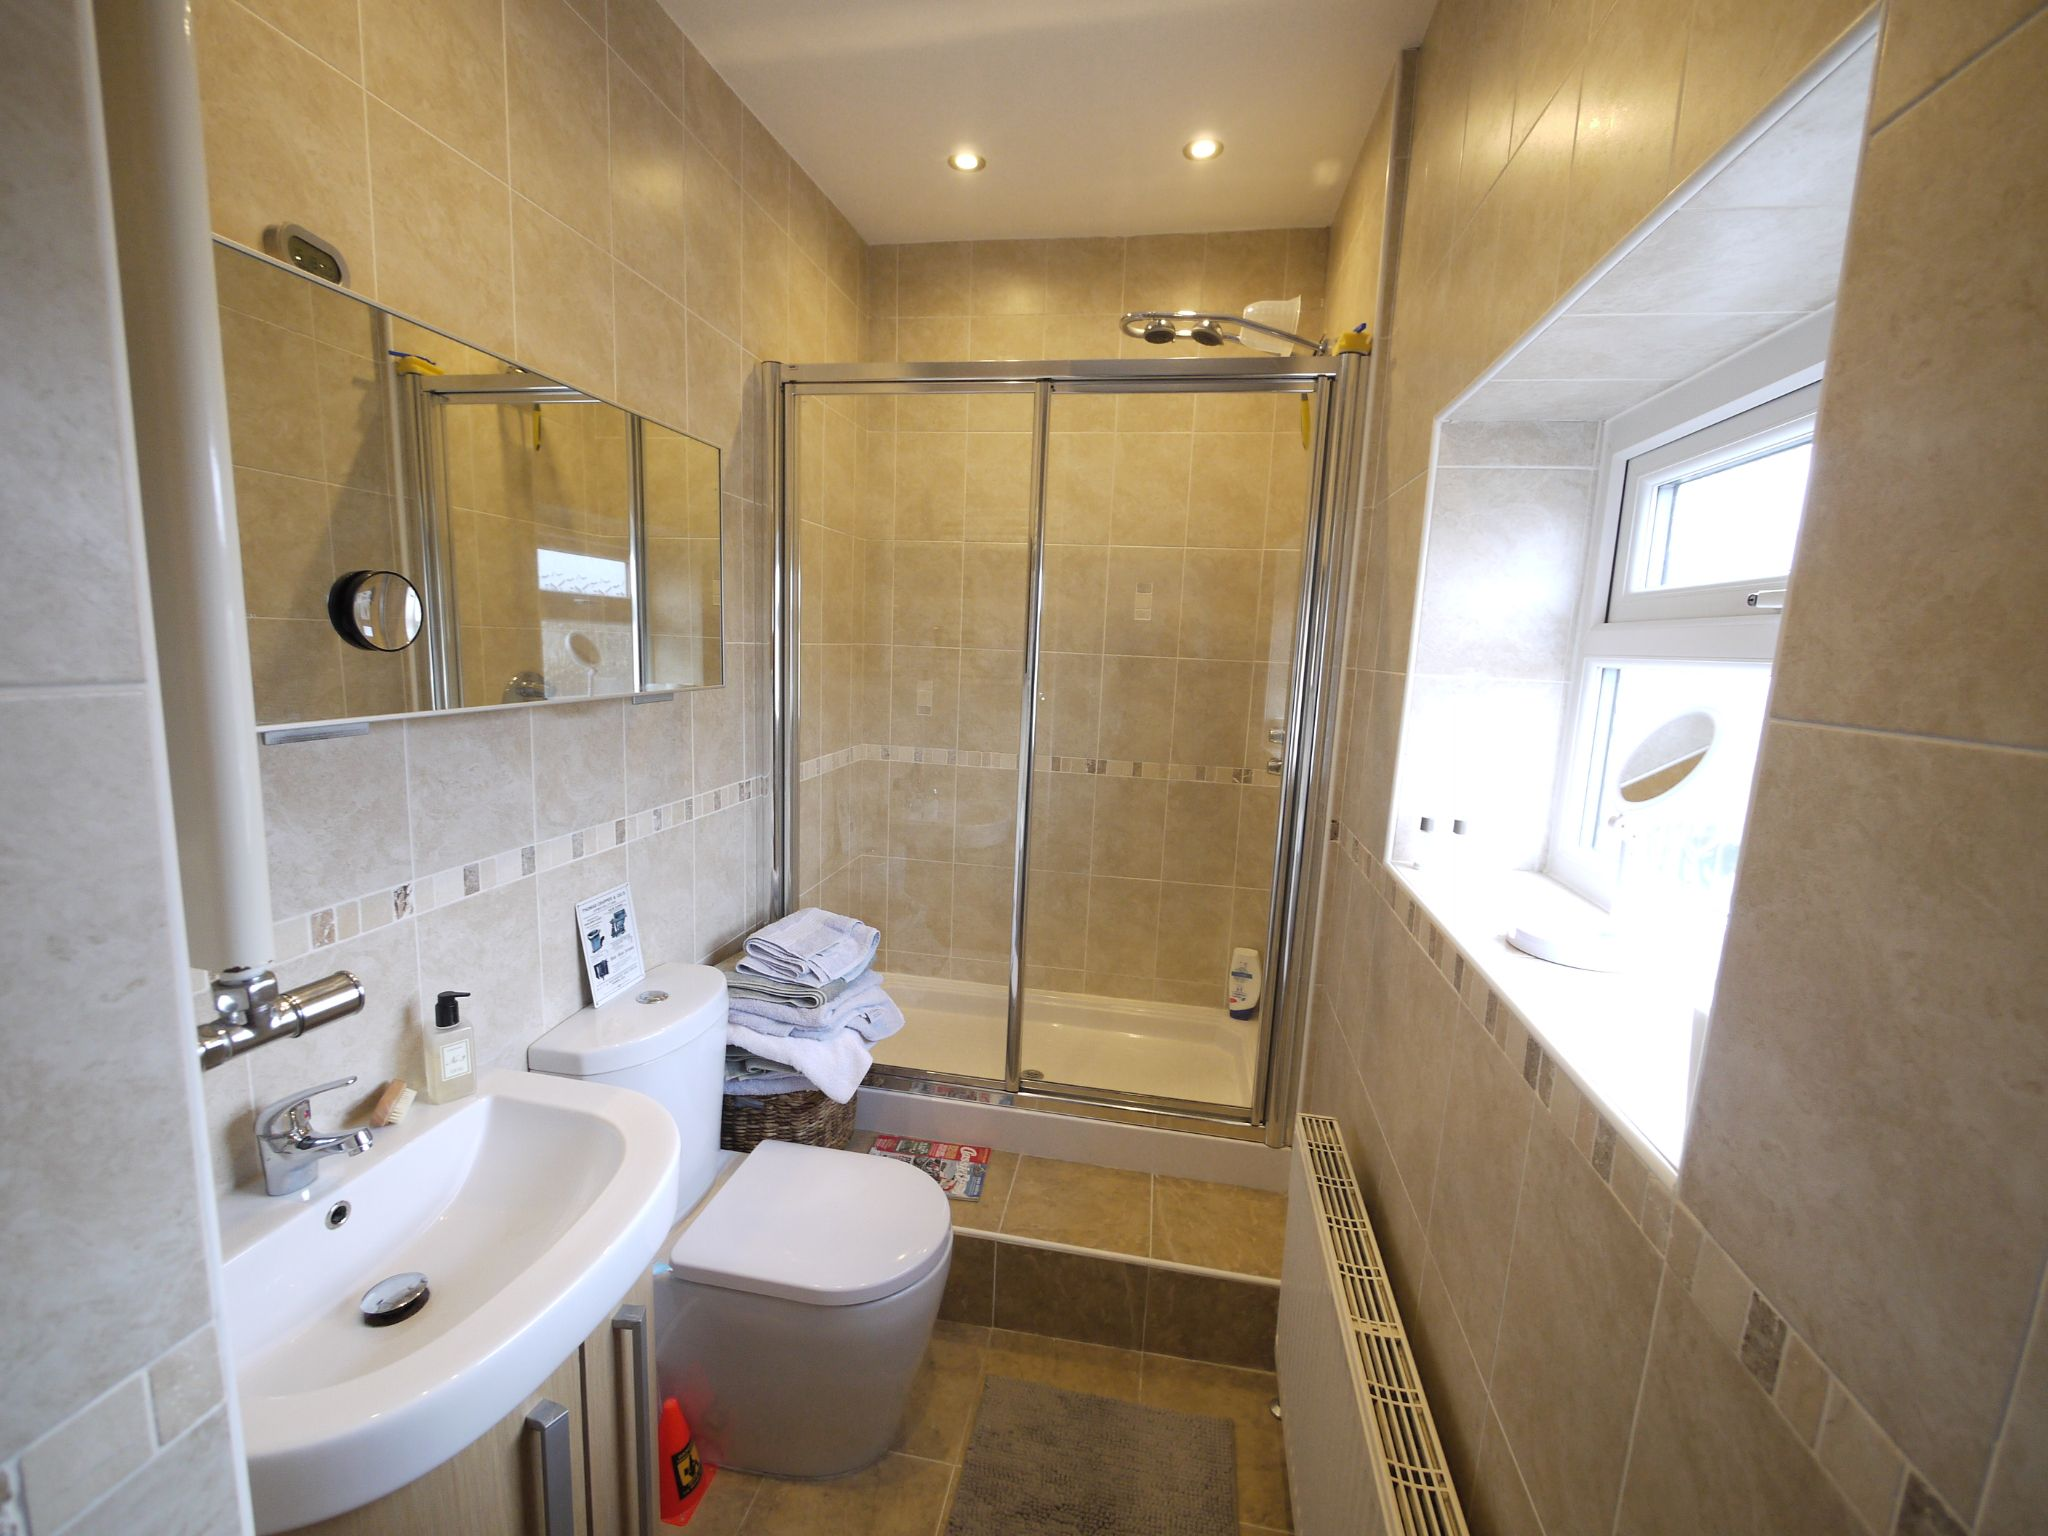 1 bedroom detached house For Sale in Brighouse - Photograph 3.